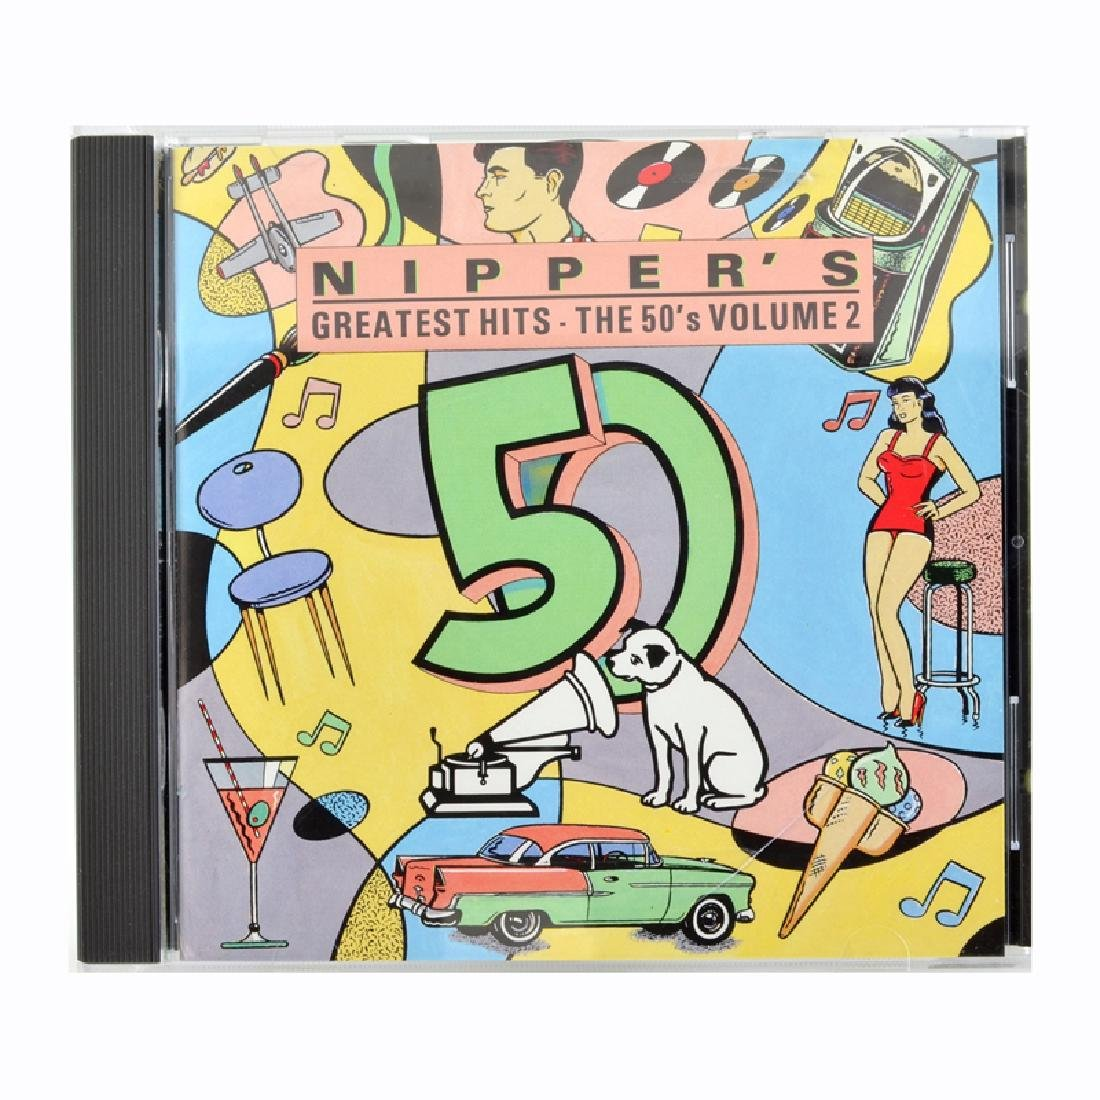 Nipper's Greatest Hits The 50's Vol. 2 CDs